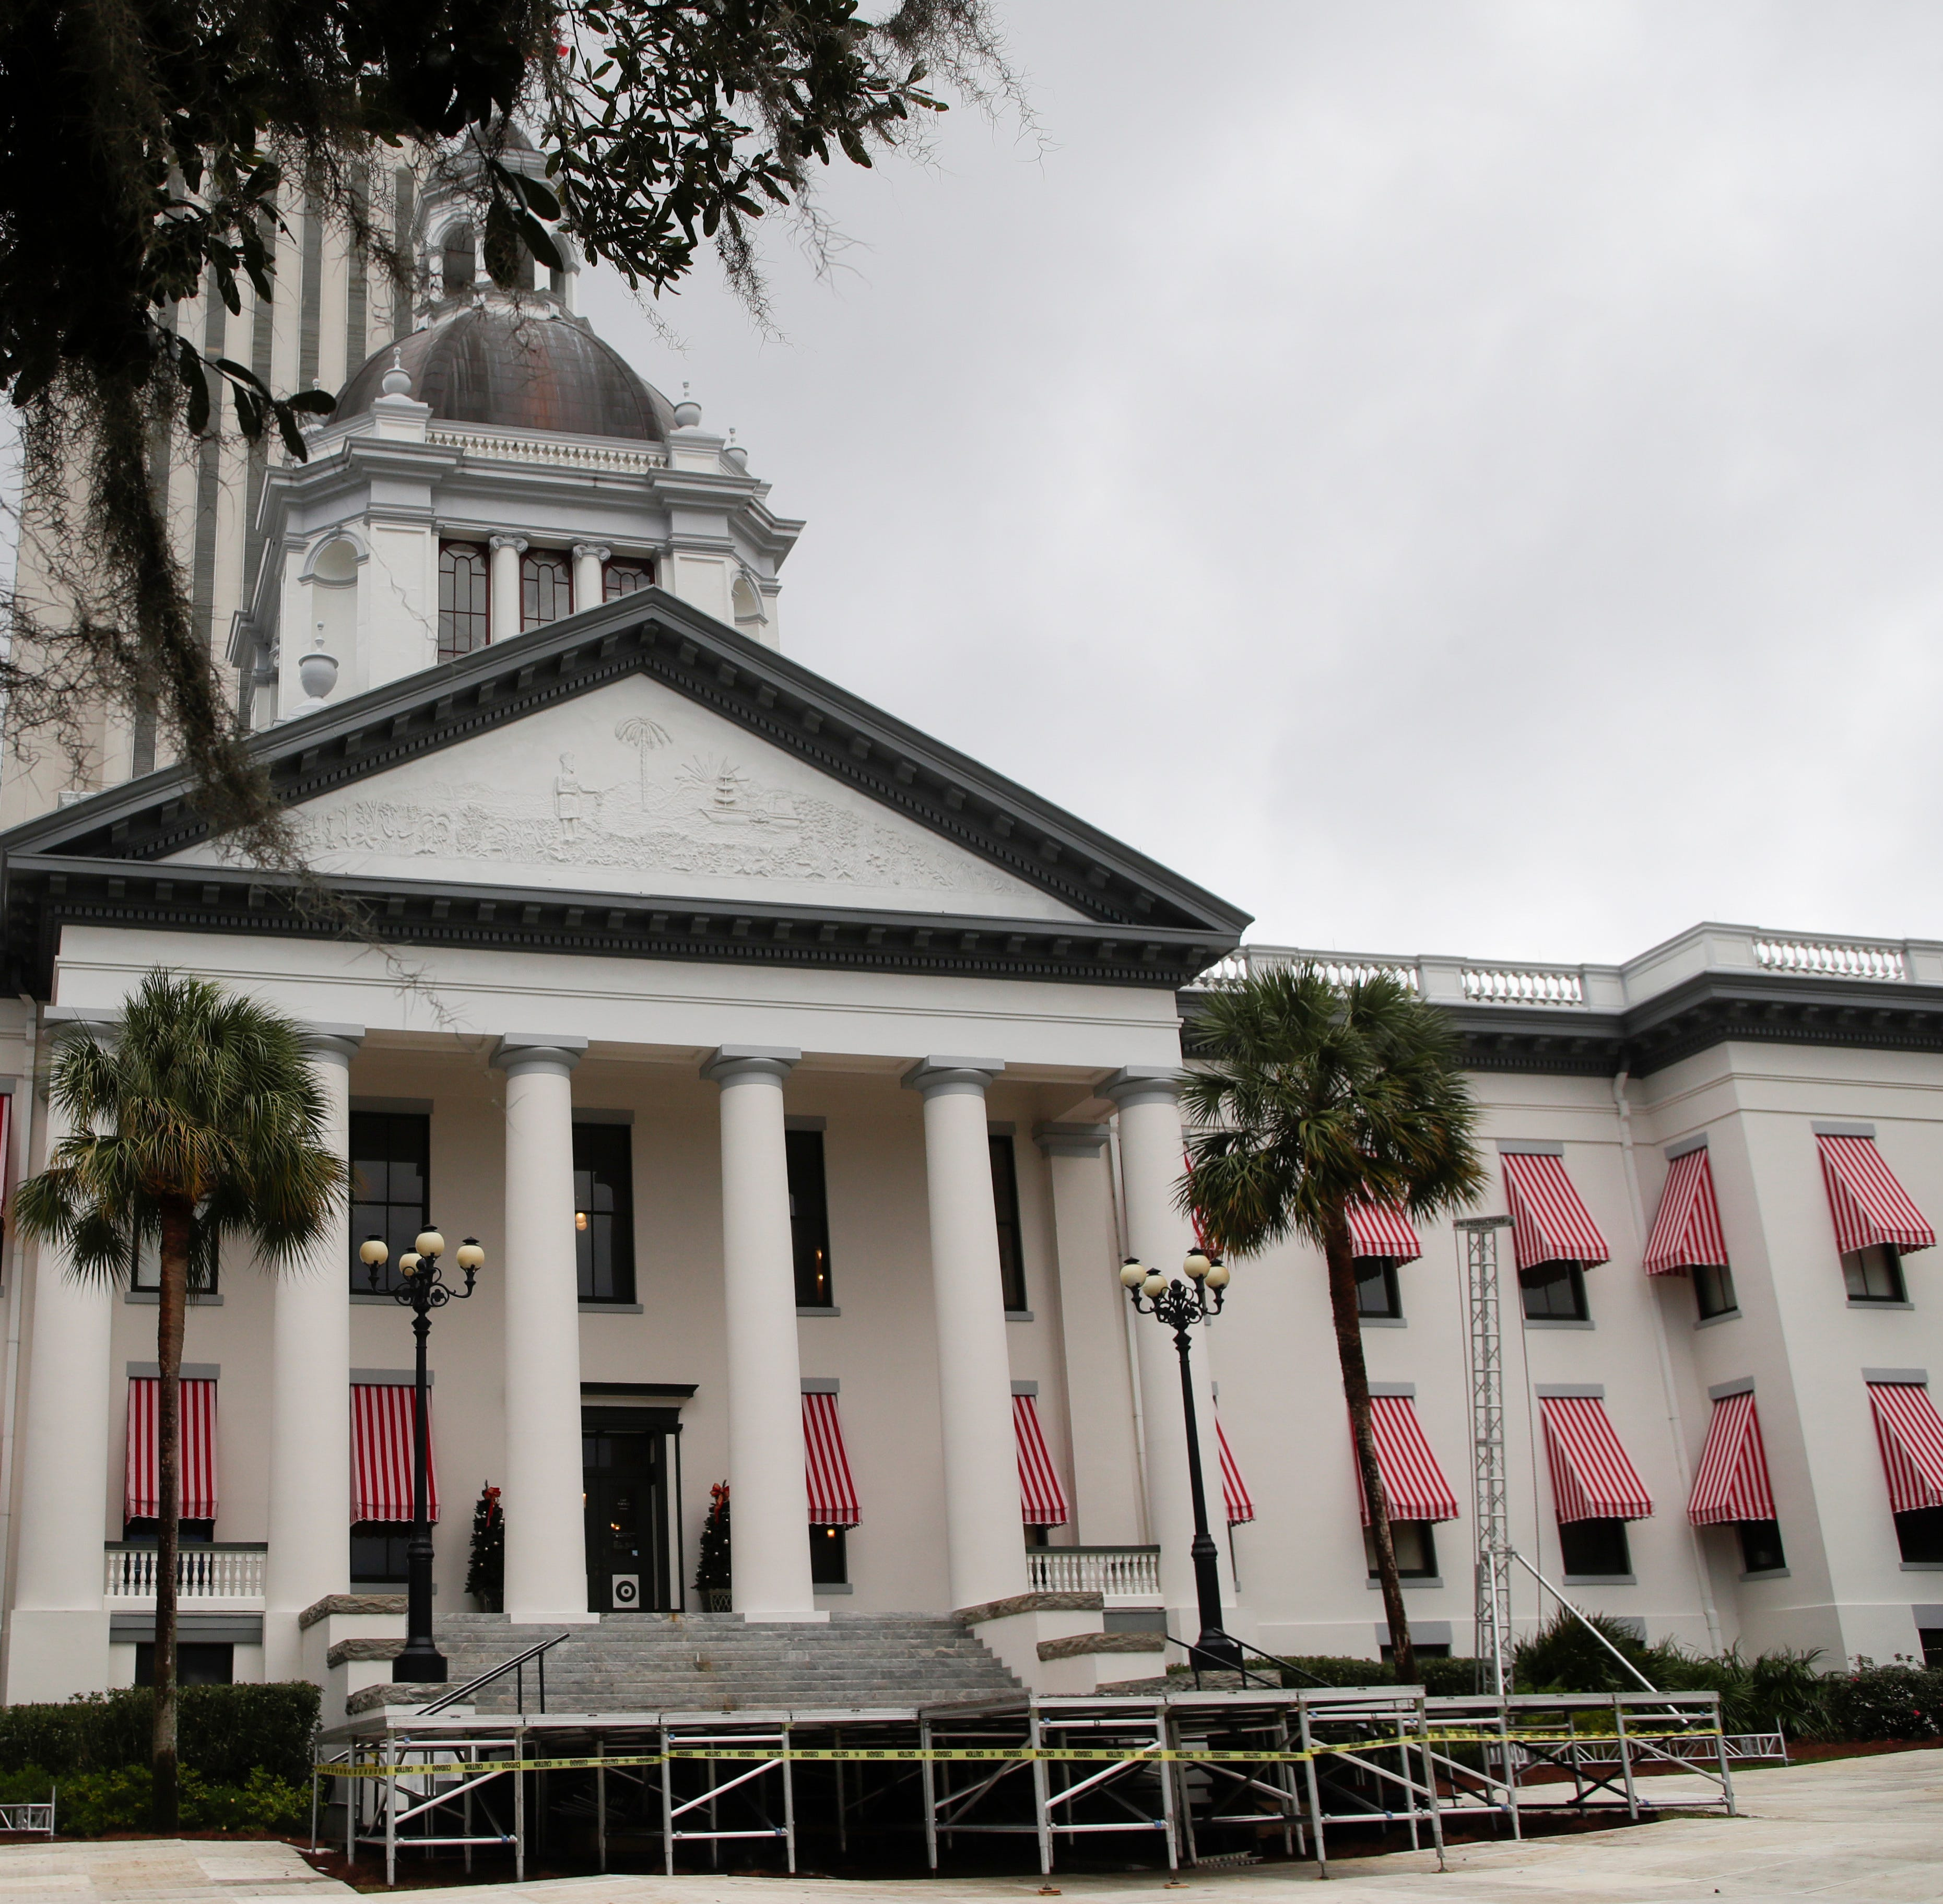 The perennial push to move the capital from Tallahassee down south is back